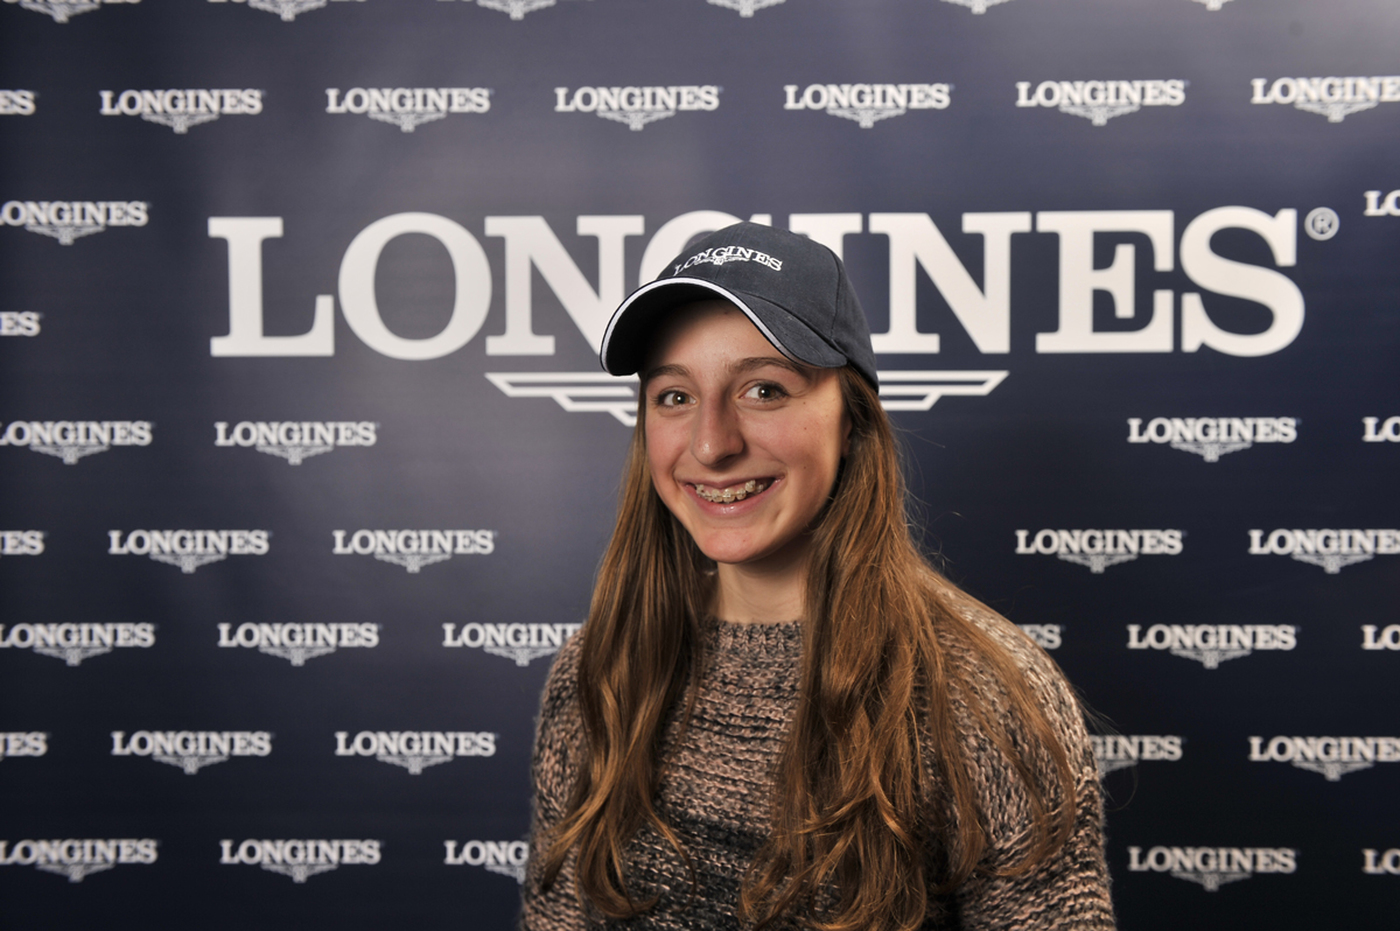 Longines Alpine Skiing Event: Second edition of the Longines Future Ski Champions – A successful 100% female competition in Val d'Isère 8